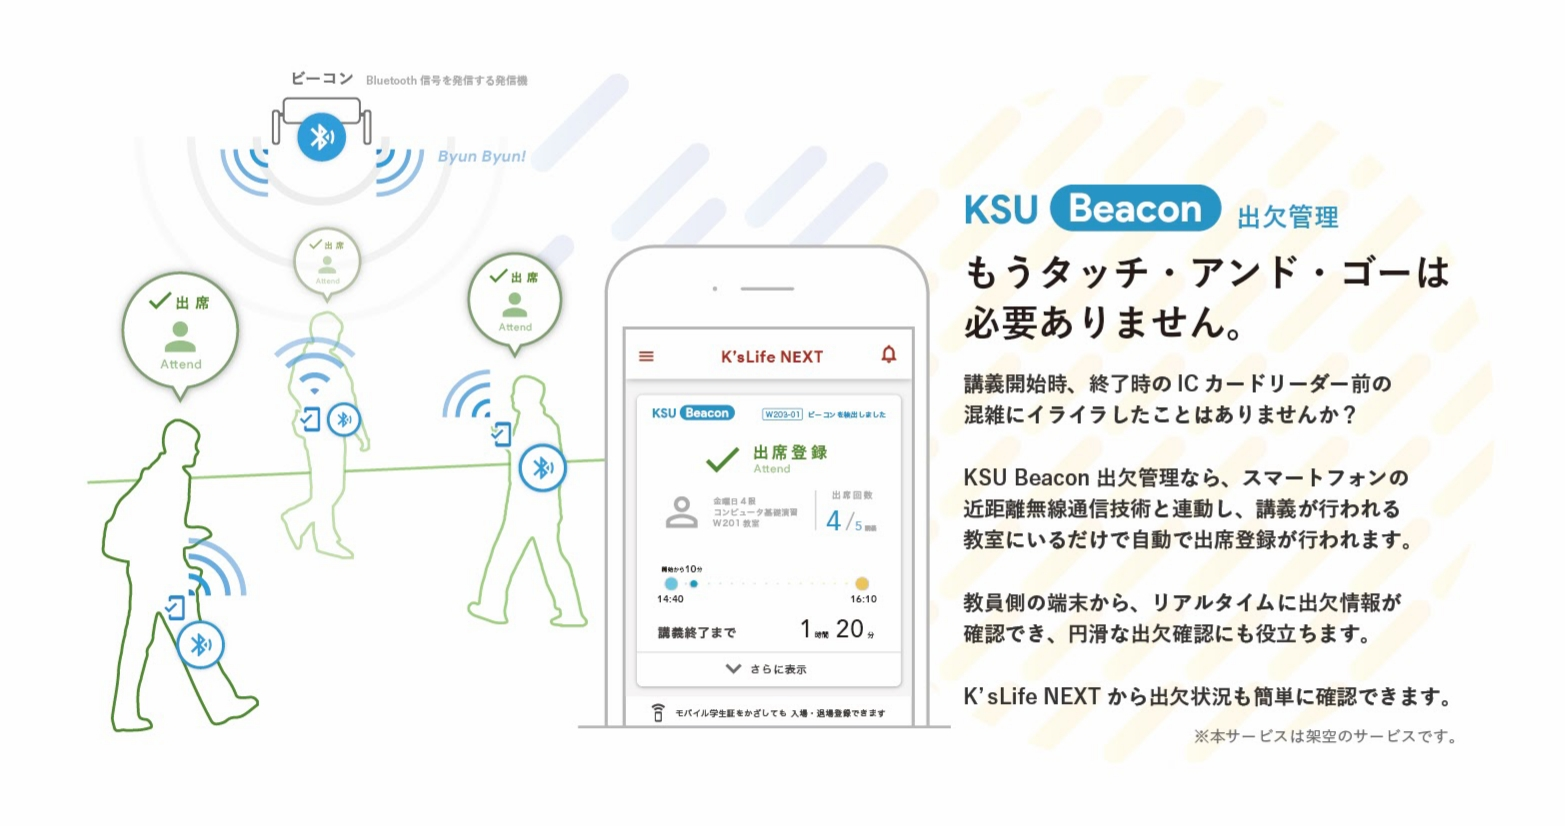 KSU_Beacon1.jpg